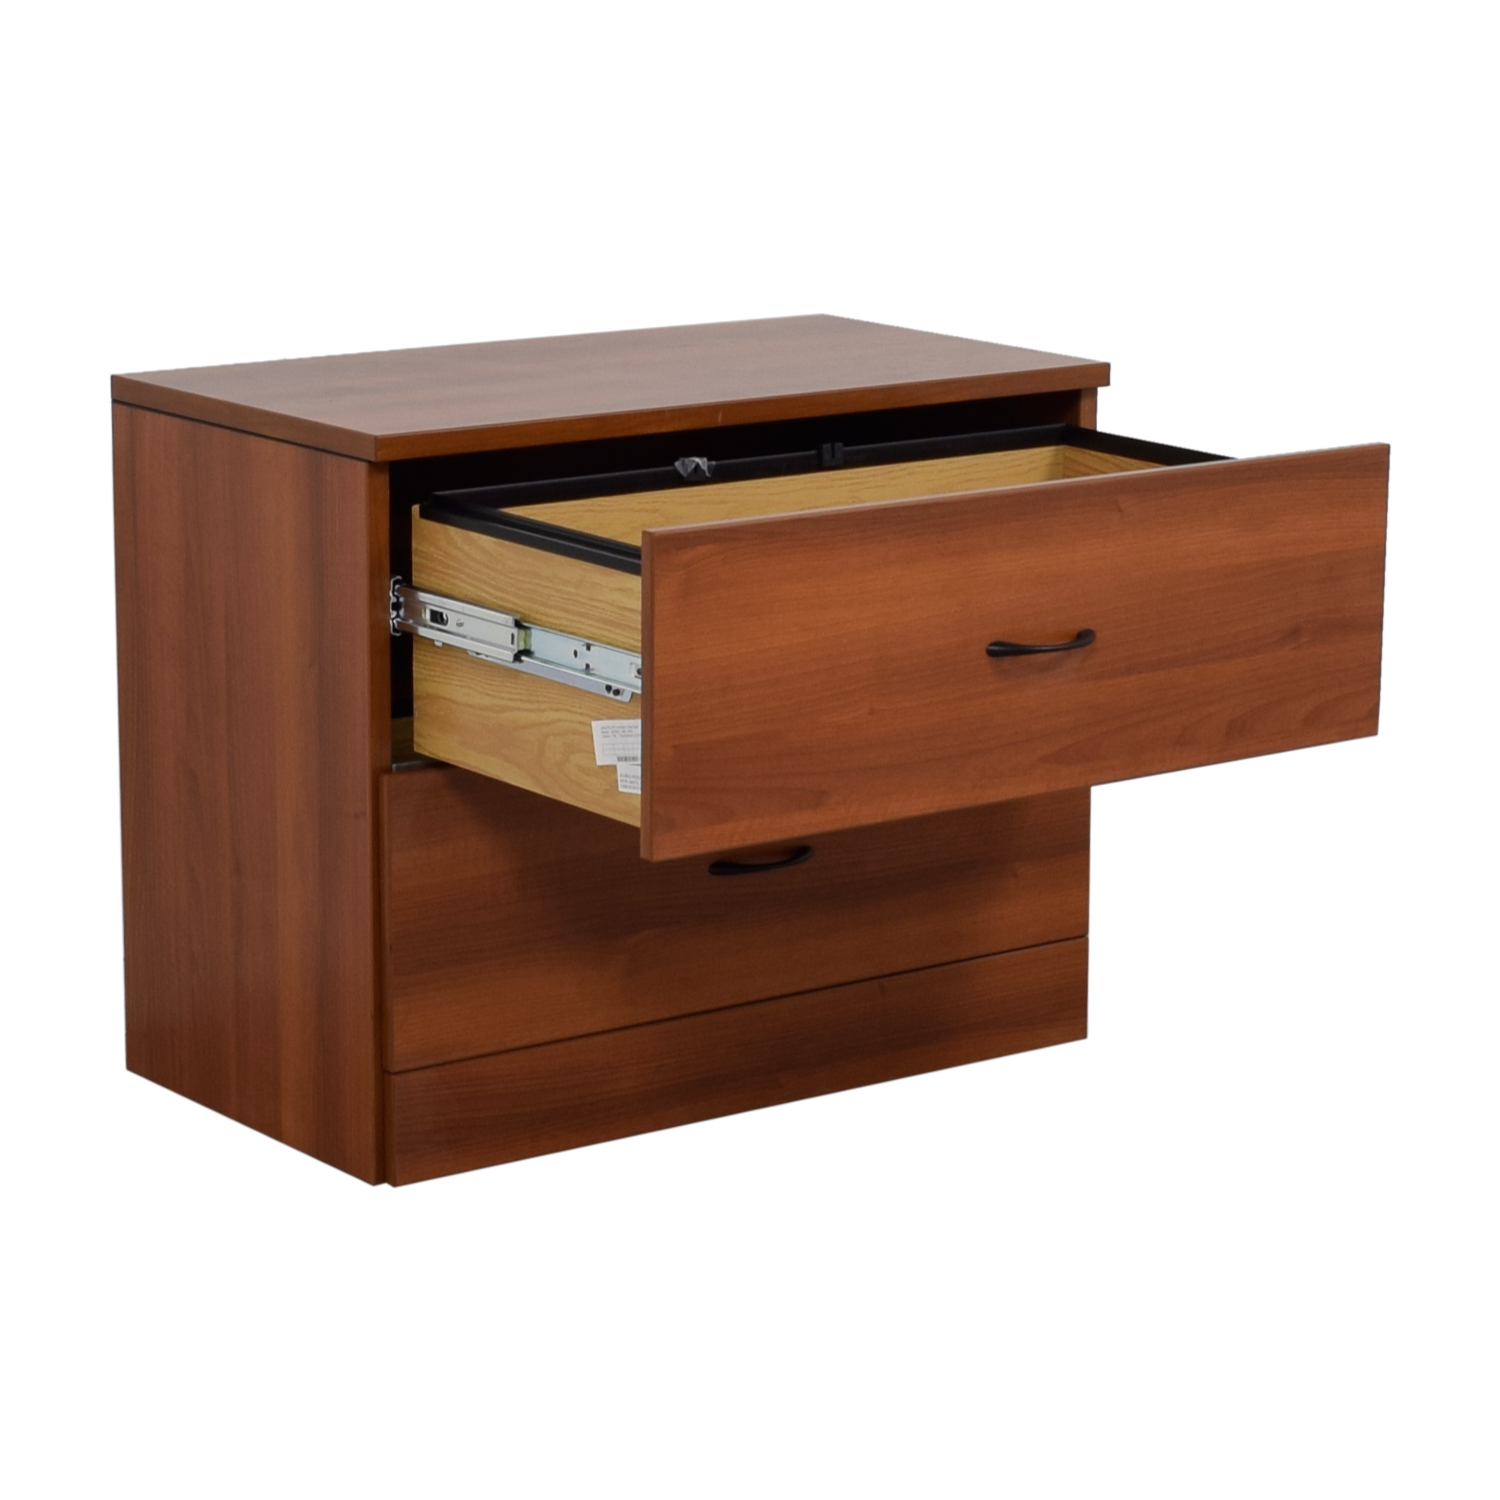 shop  Cherry Two-Drawer Office Filing Cabinet online